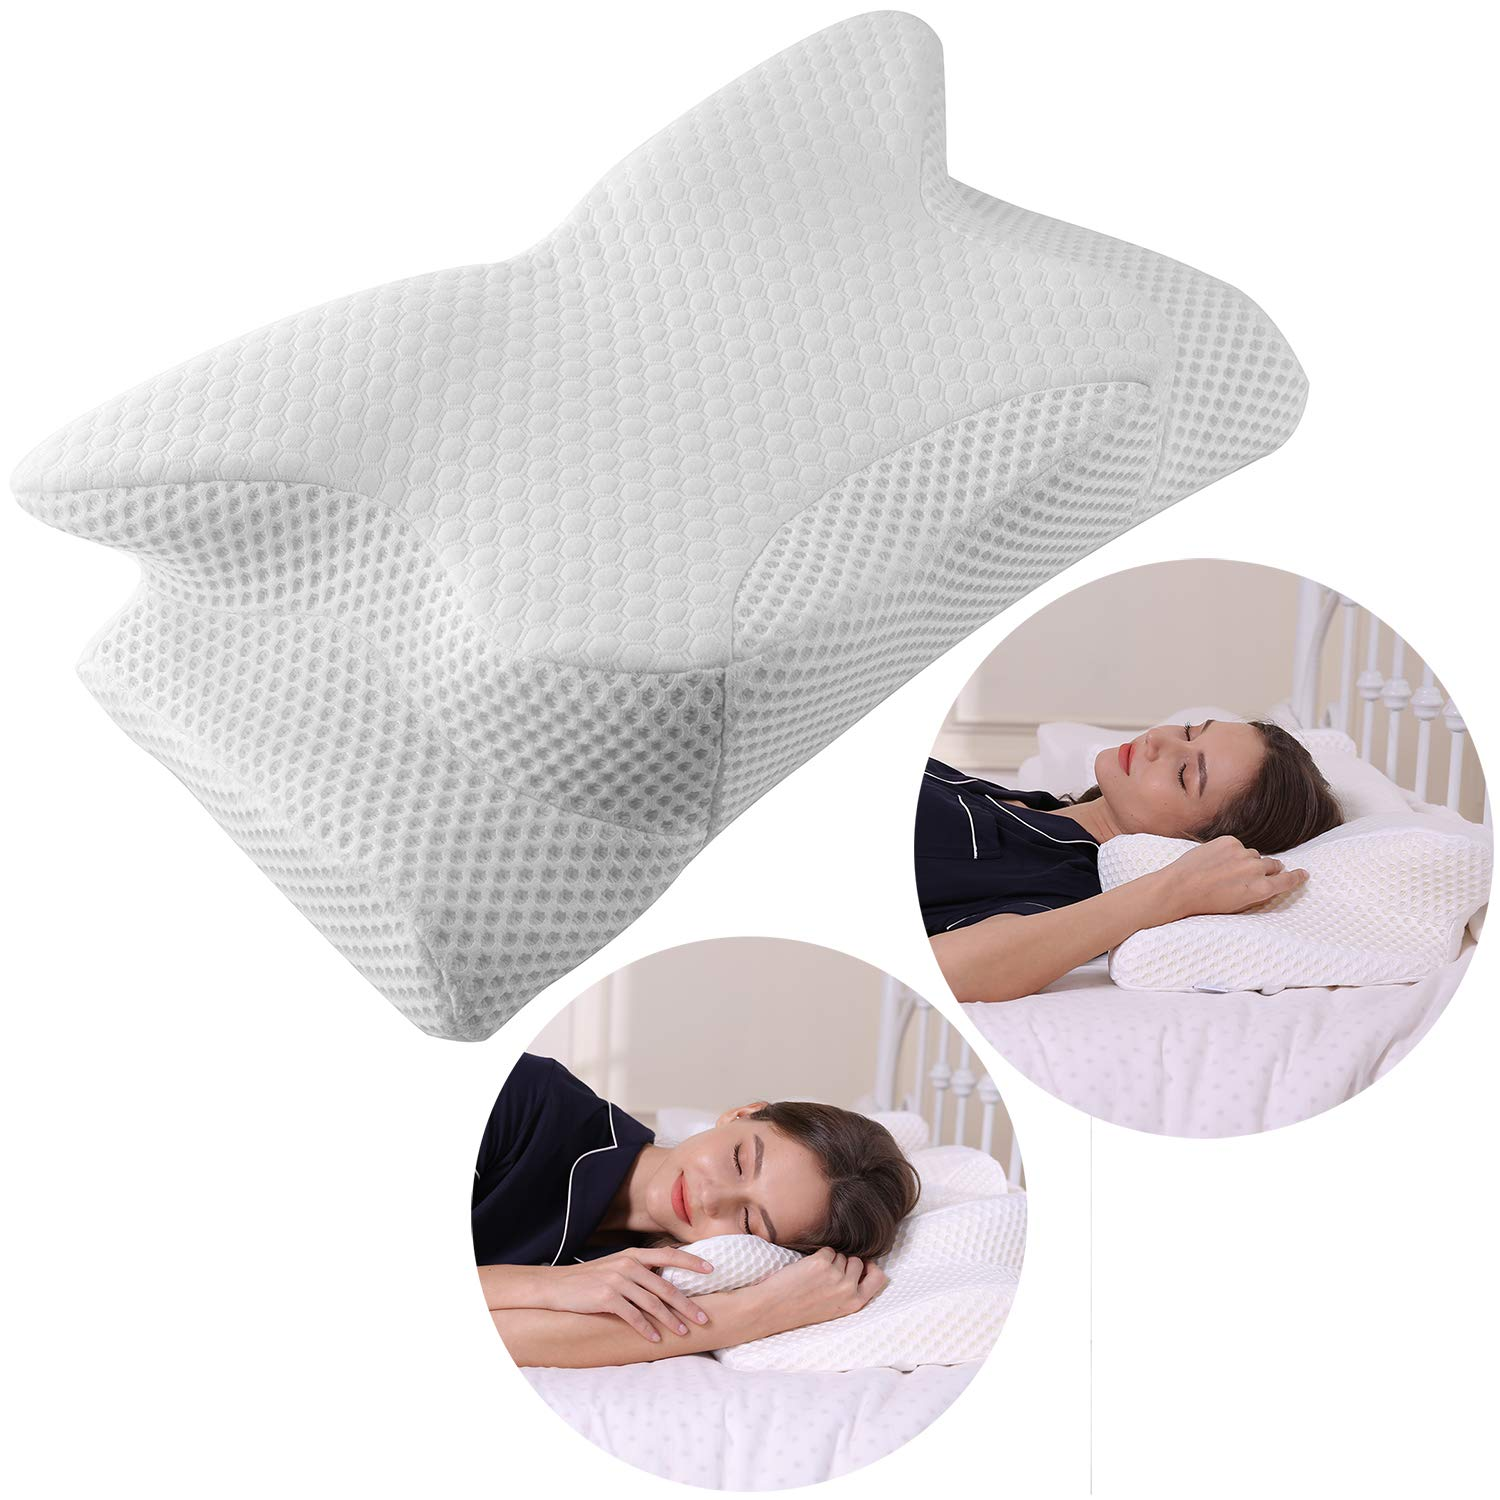 Cervical Pillow Contour Pillow for Neck and Shoulder Pain, Coisum Orthopedic Memory Foam Pillow Ergonomic Bed Pillow for Side Sleepers Back Sleepers,